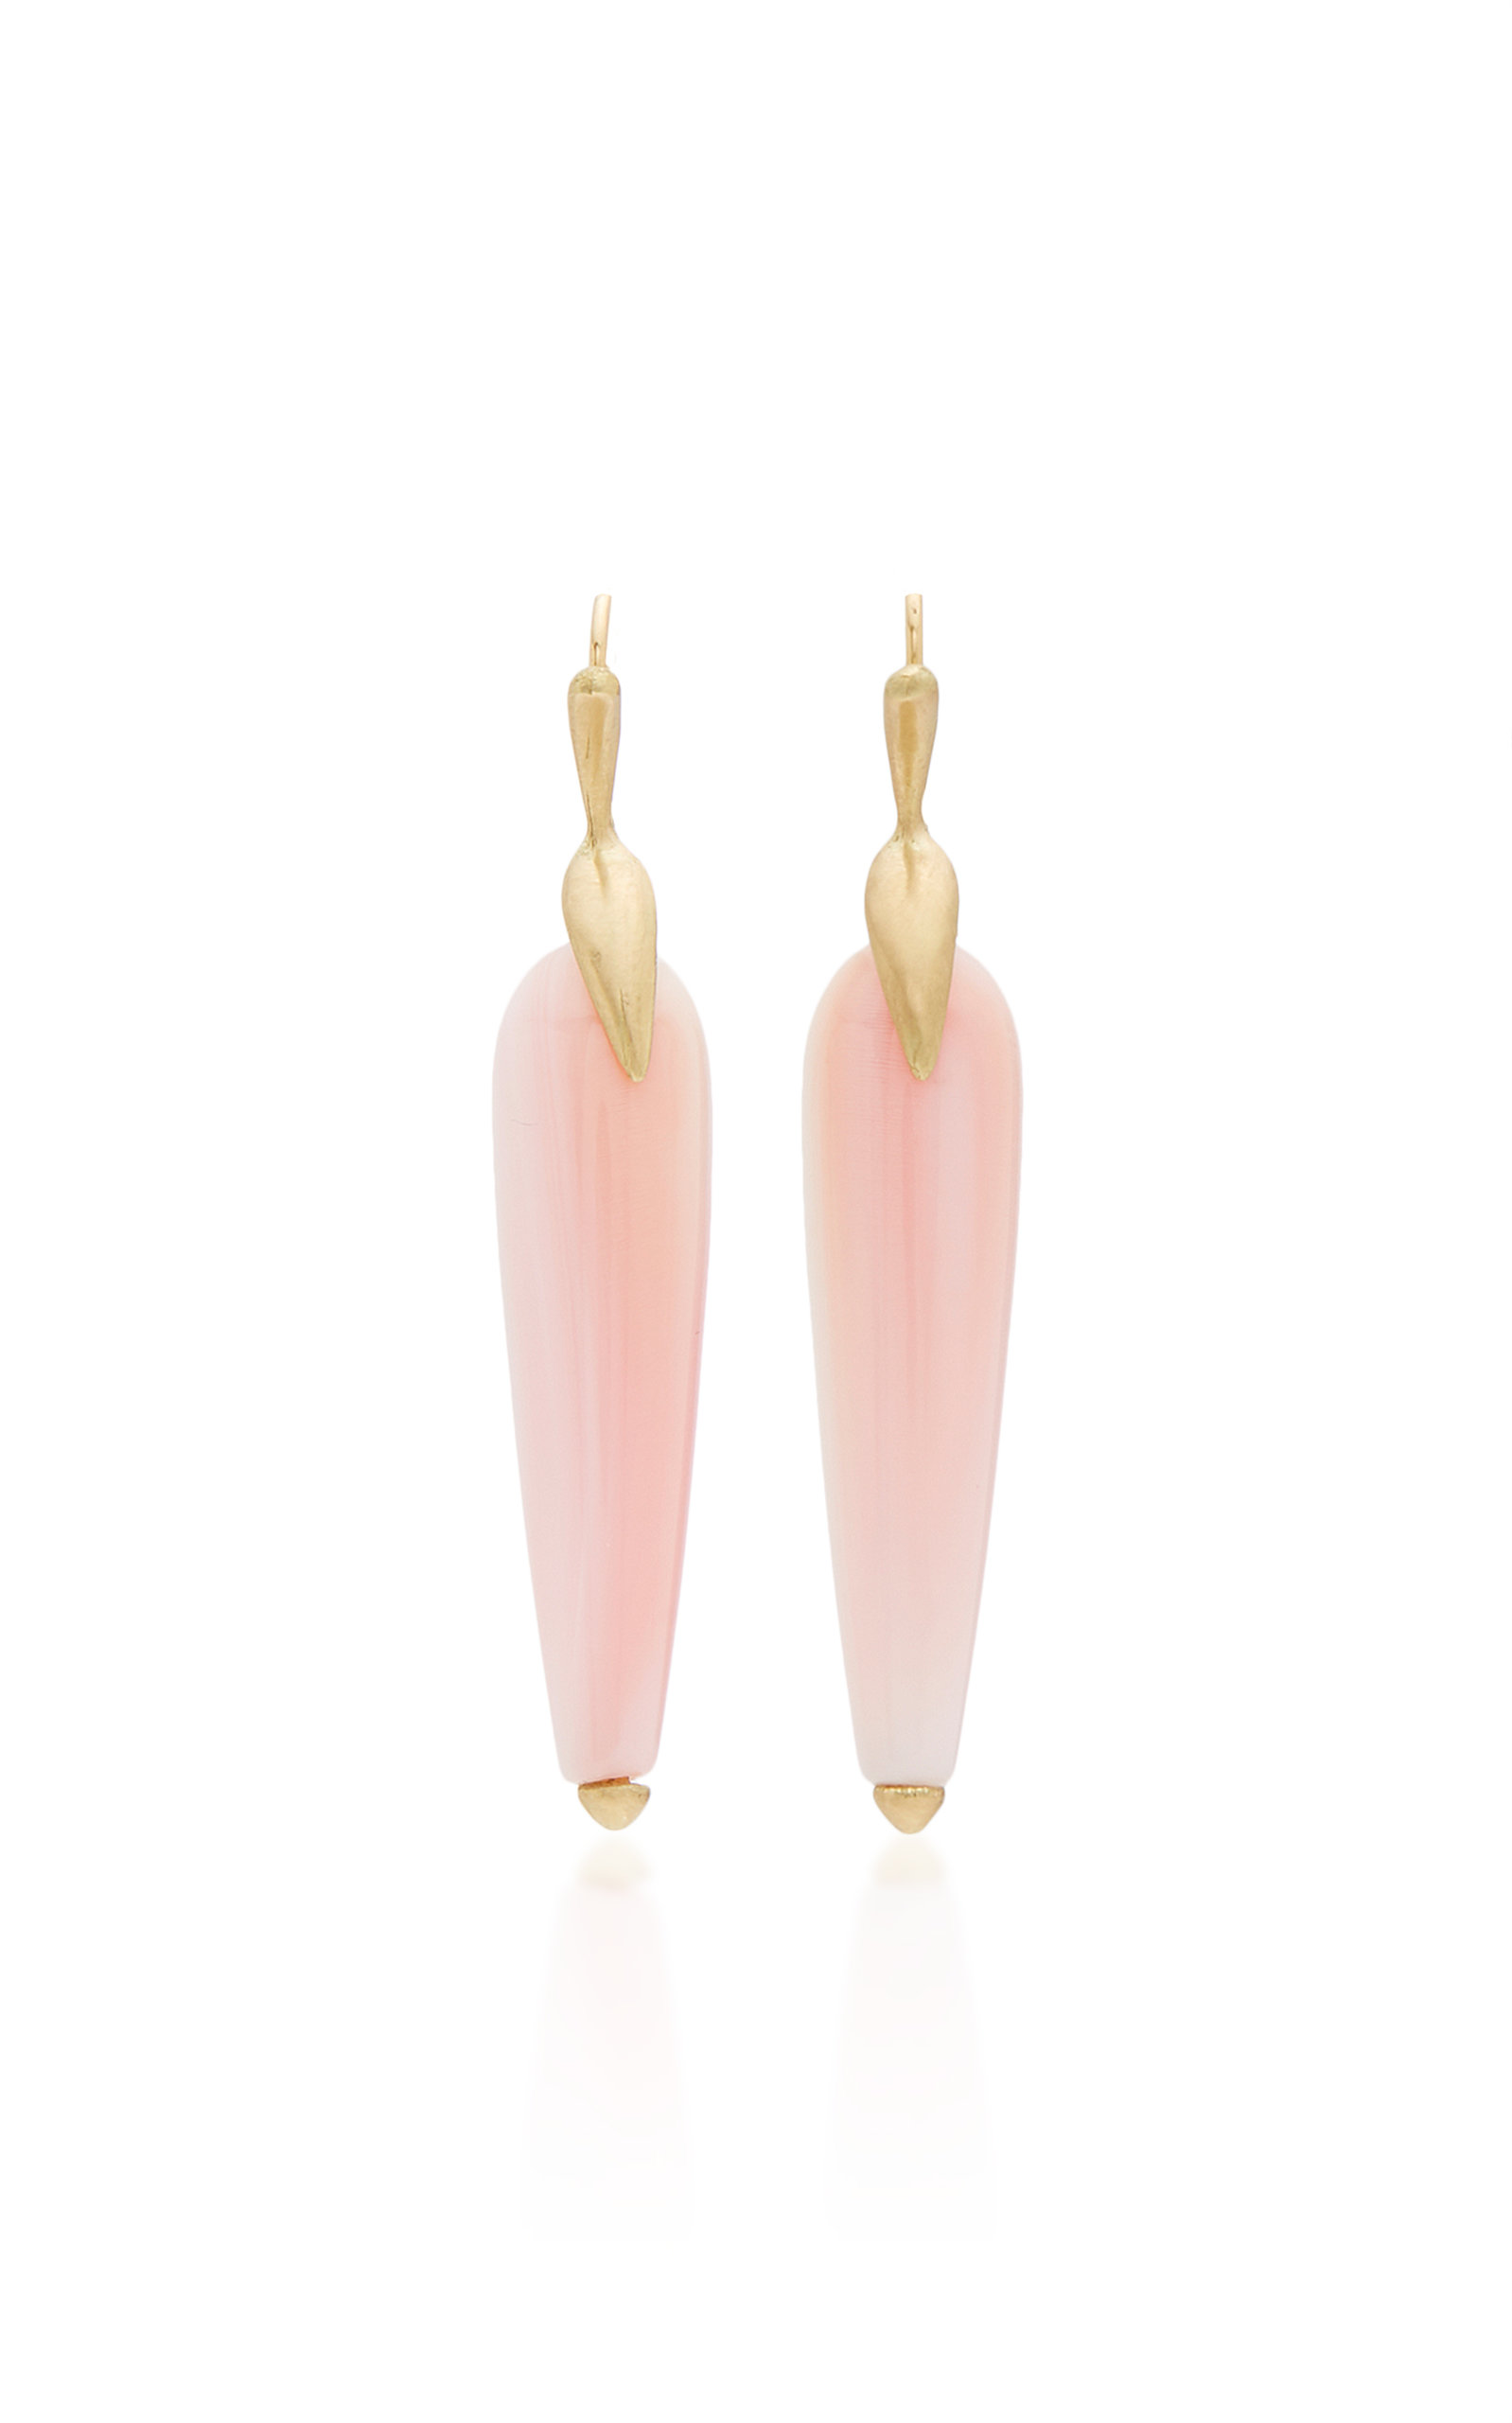 ANNETTE FERDINANDSEN M'O EXCLUSIVE: PINK CONCH SIMPLE BRID EARRINGS